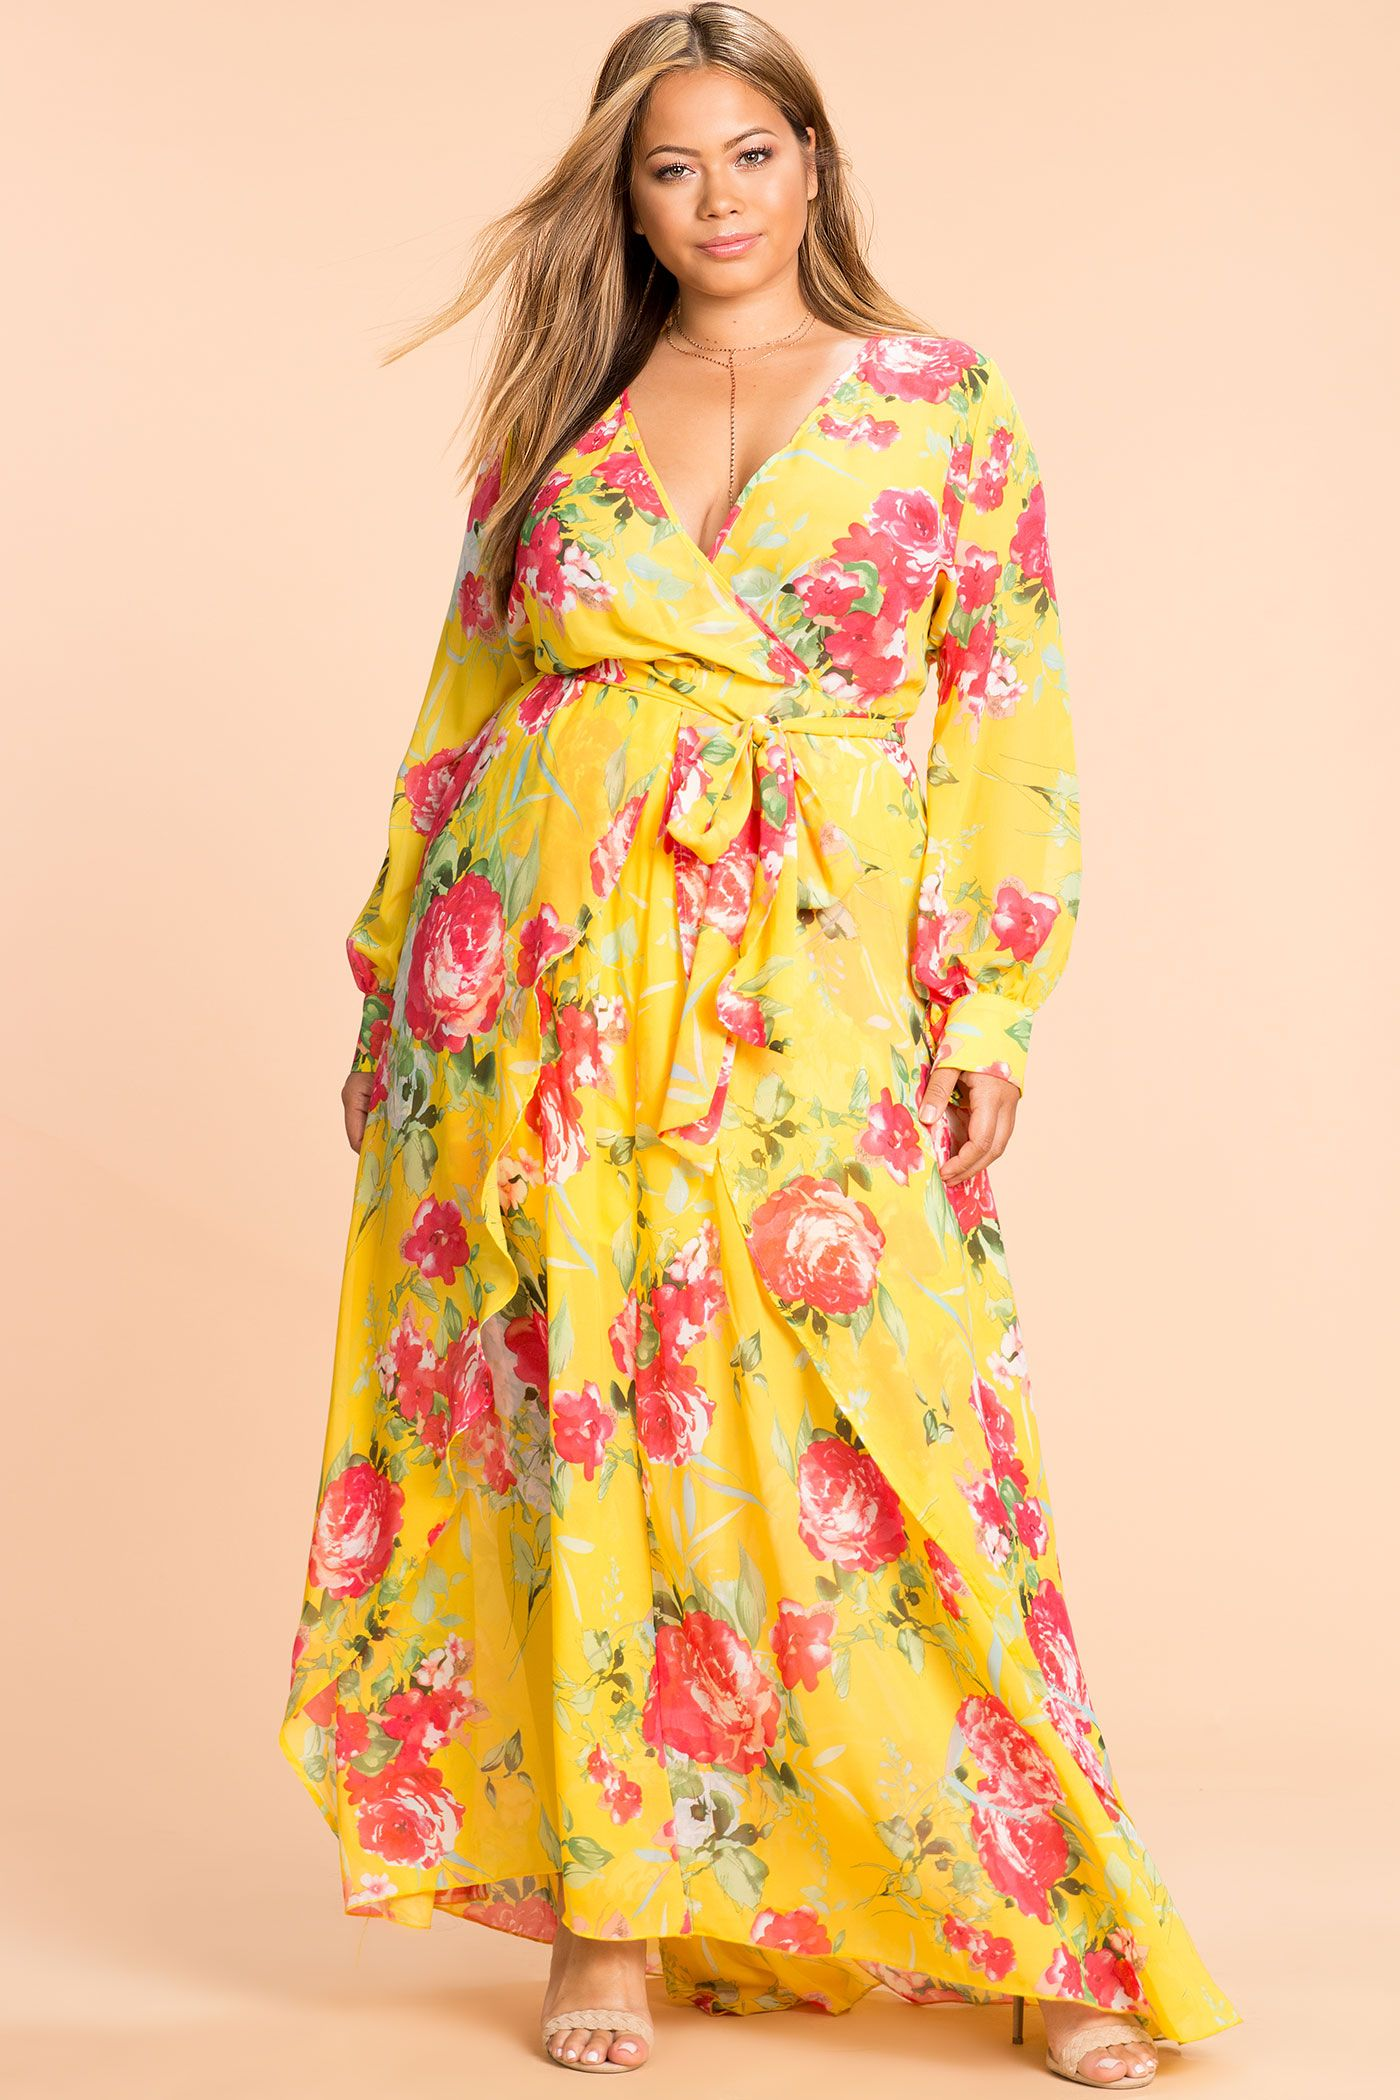 Plus Size Dress For Summer Plus Size Floral Maxi Dress With Sleeves Plus Size Summer Fashion Trendy Plus Size Fashion Plus Size Summer Dresses [ 2100 x 1400 Pixel ]